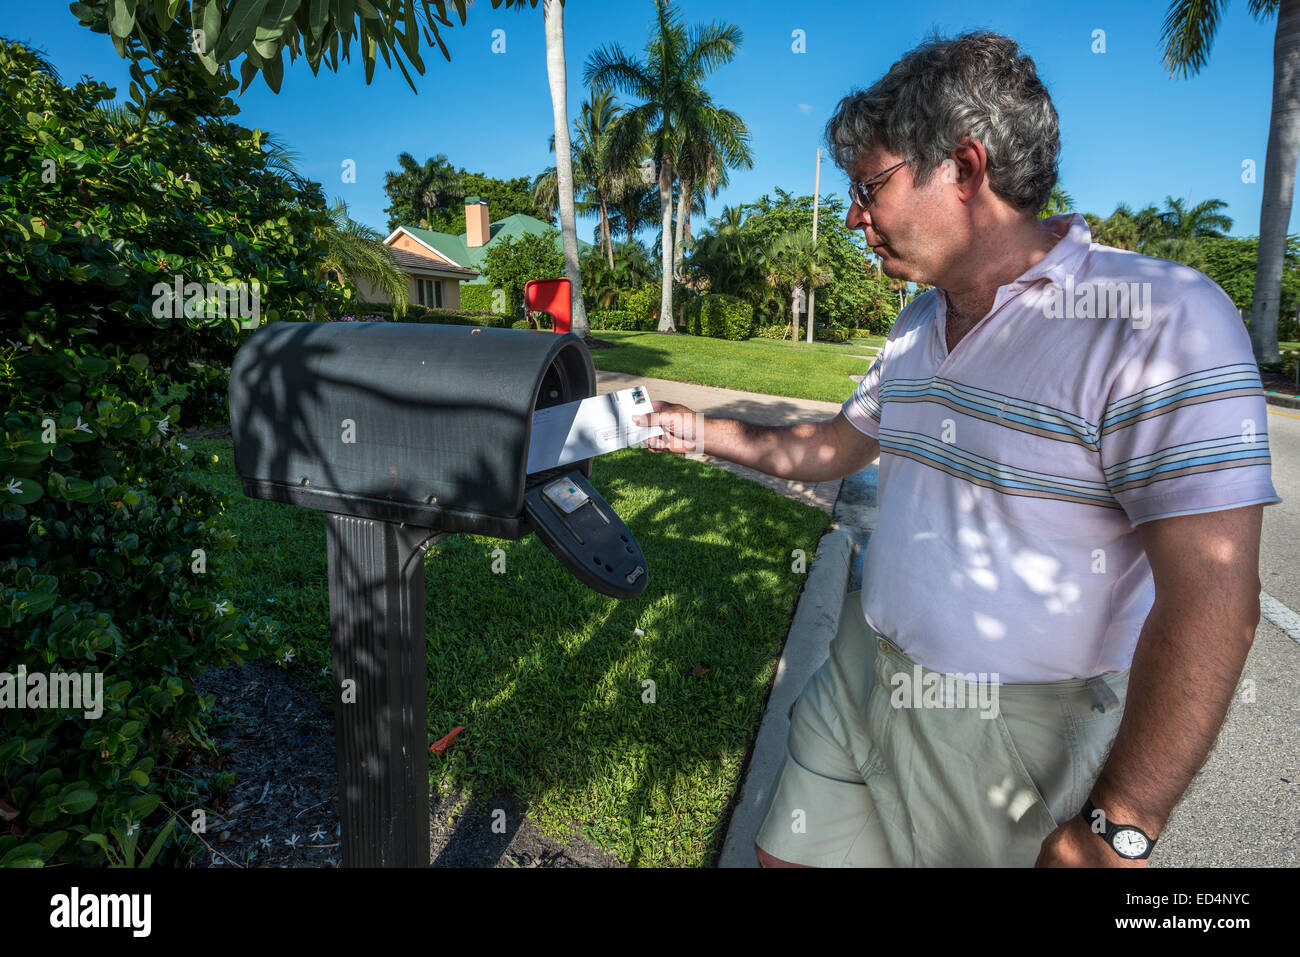 man at mailbox; naples; florida; usa; letters; roadside; residential street - Stock Image